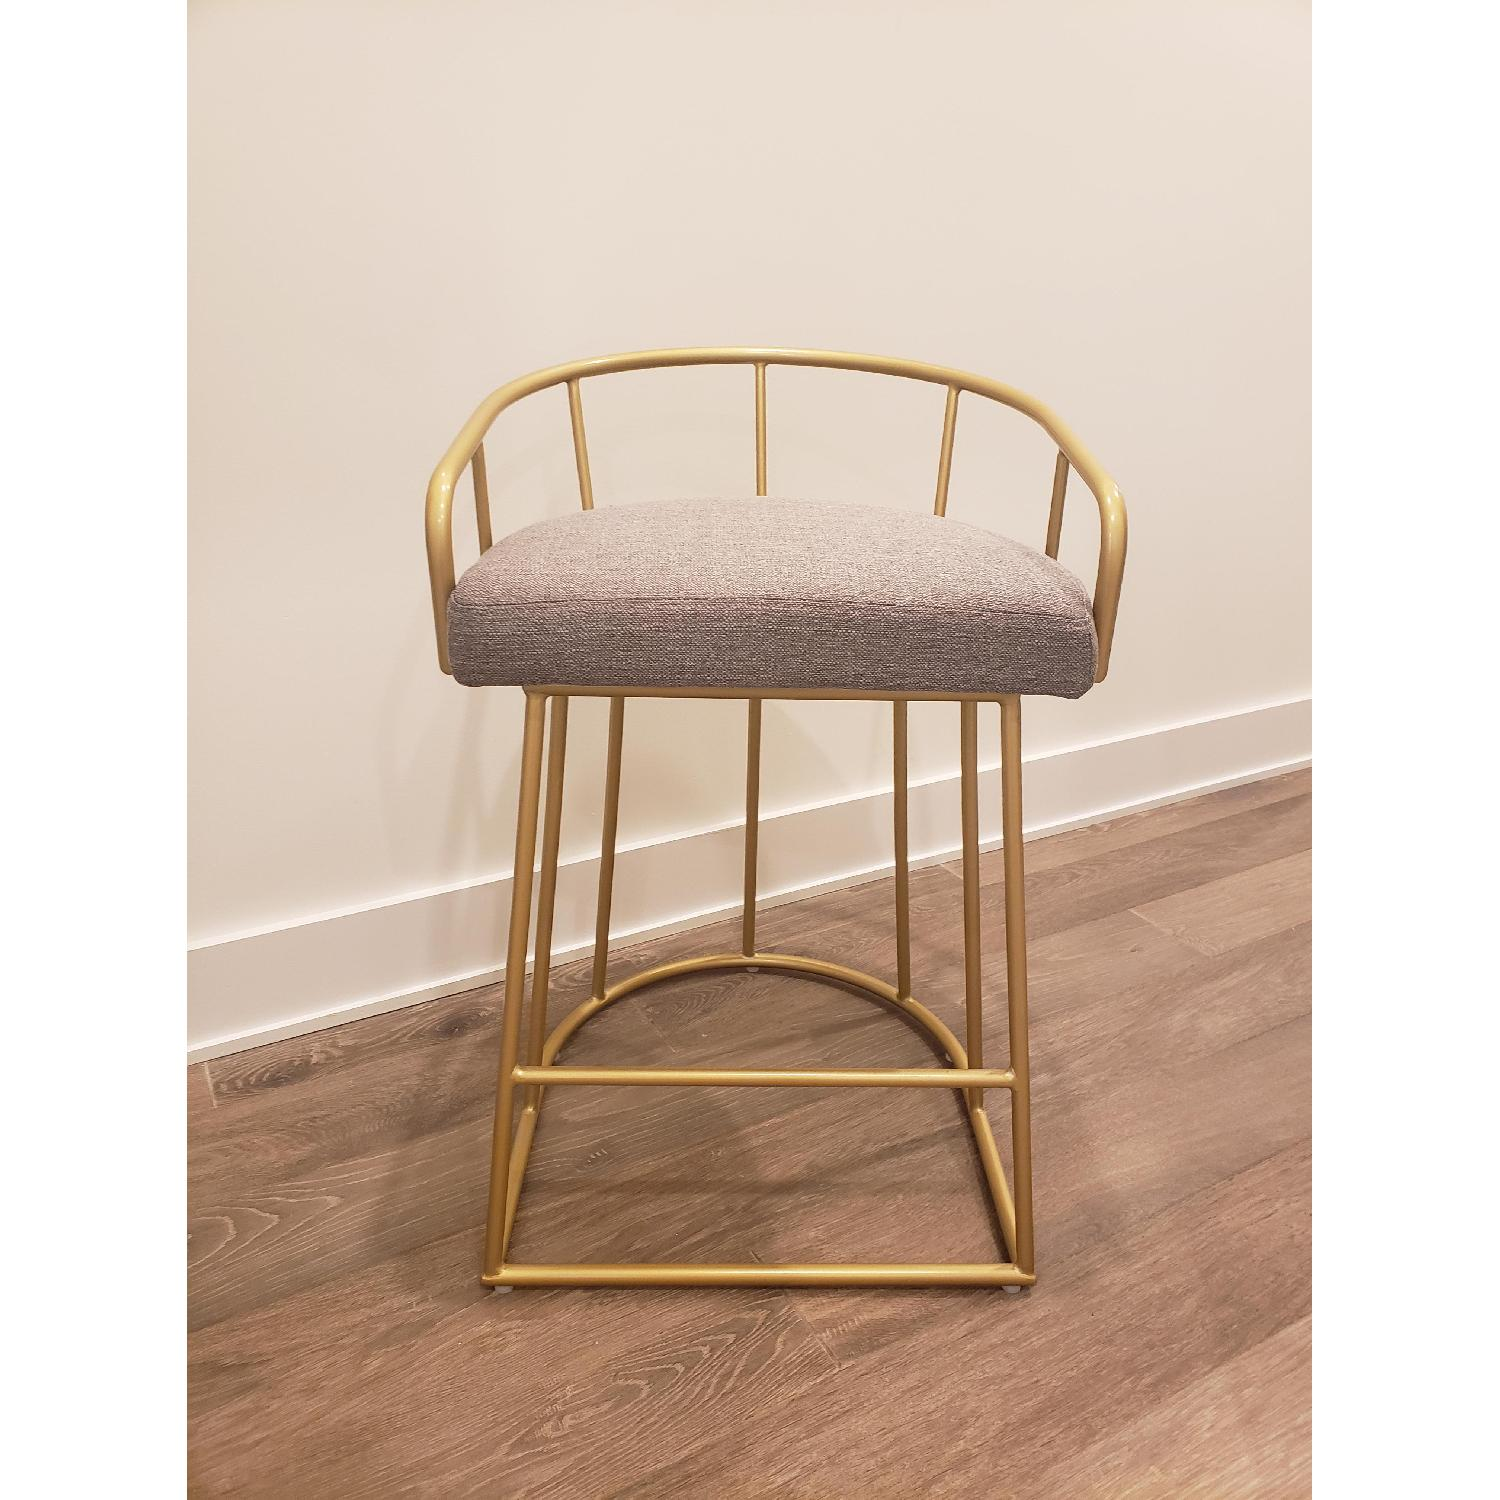 Macy's Gold Tone Upholstered Counter Stools - image-2